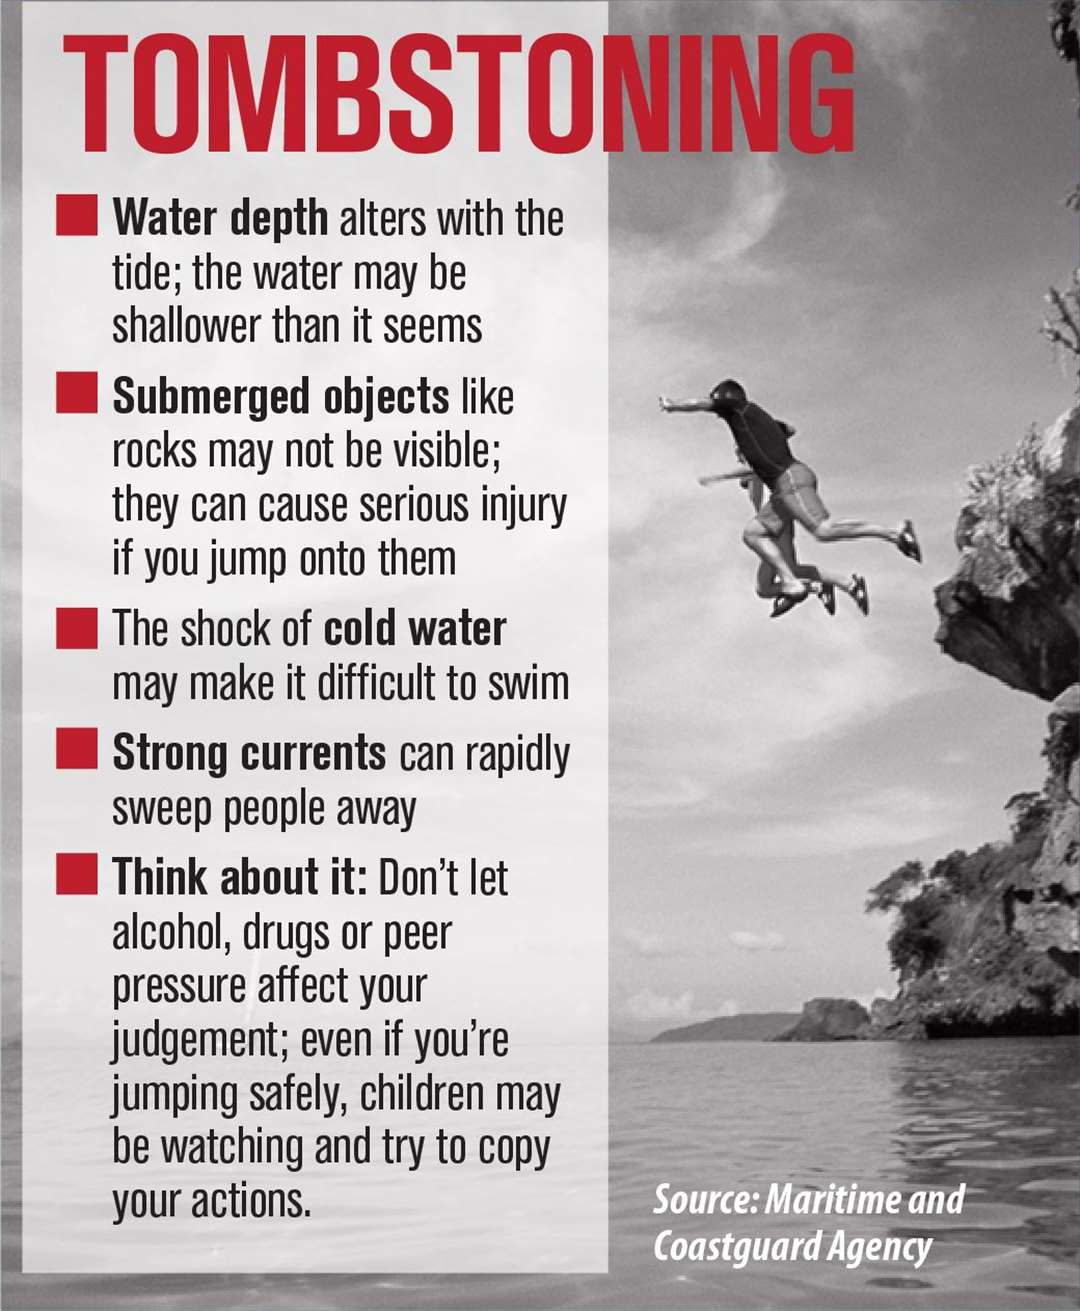 The Tombstoning warning issued by the coastguard